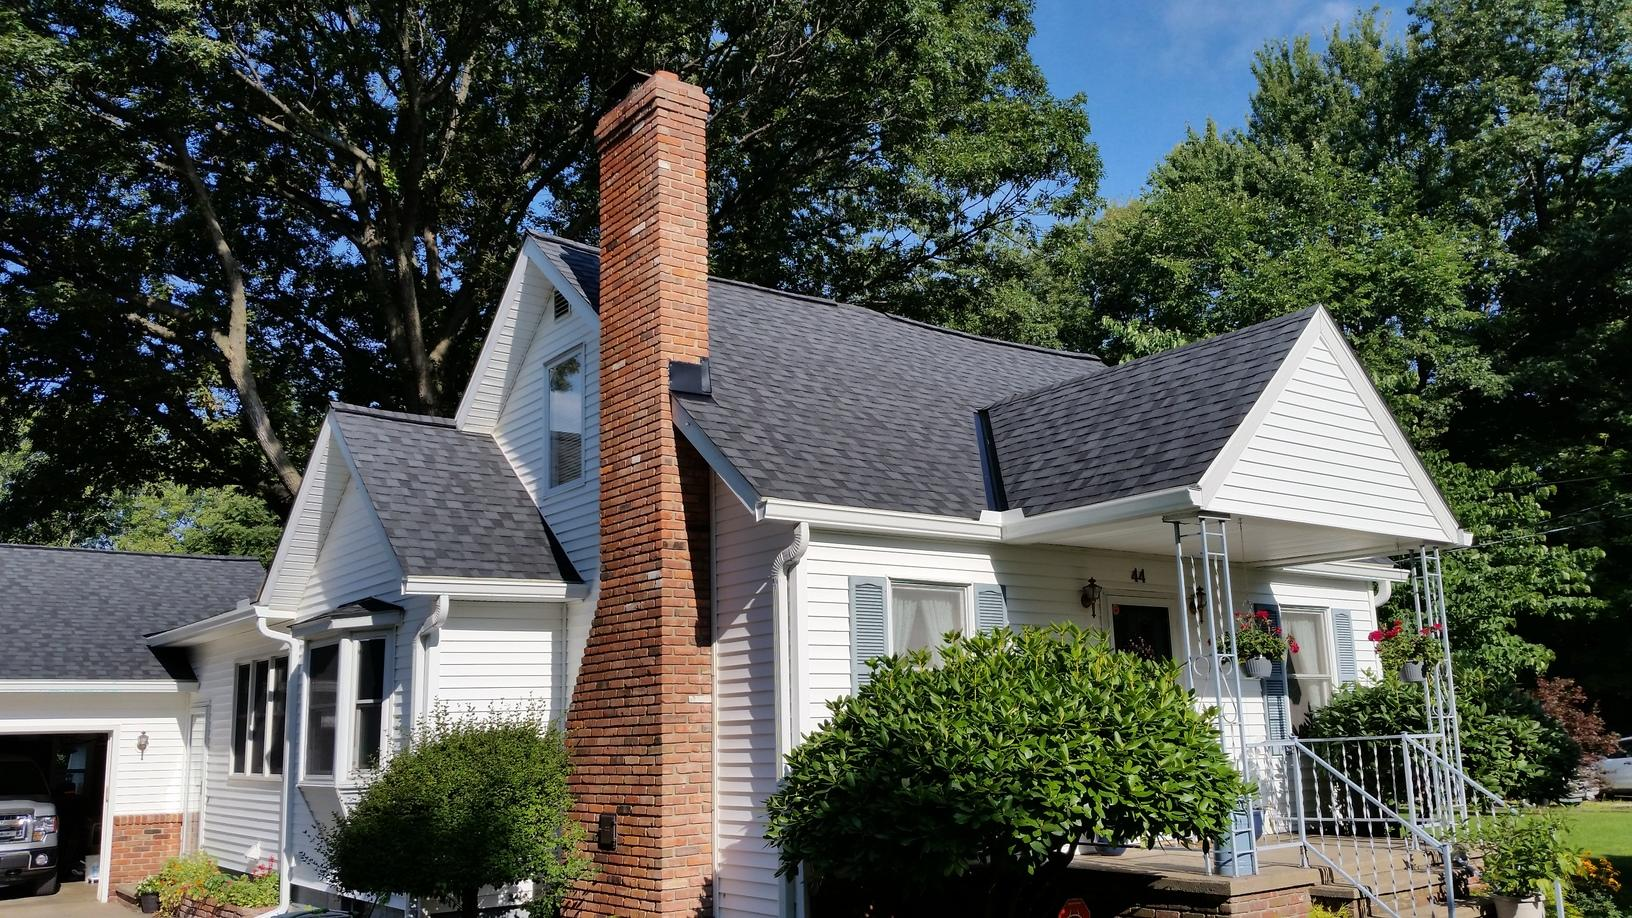 Painesville Twp Roof & Gutter Replacement Max Def - After Photo